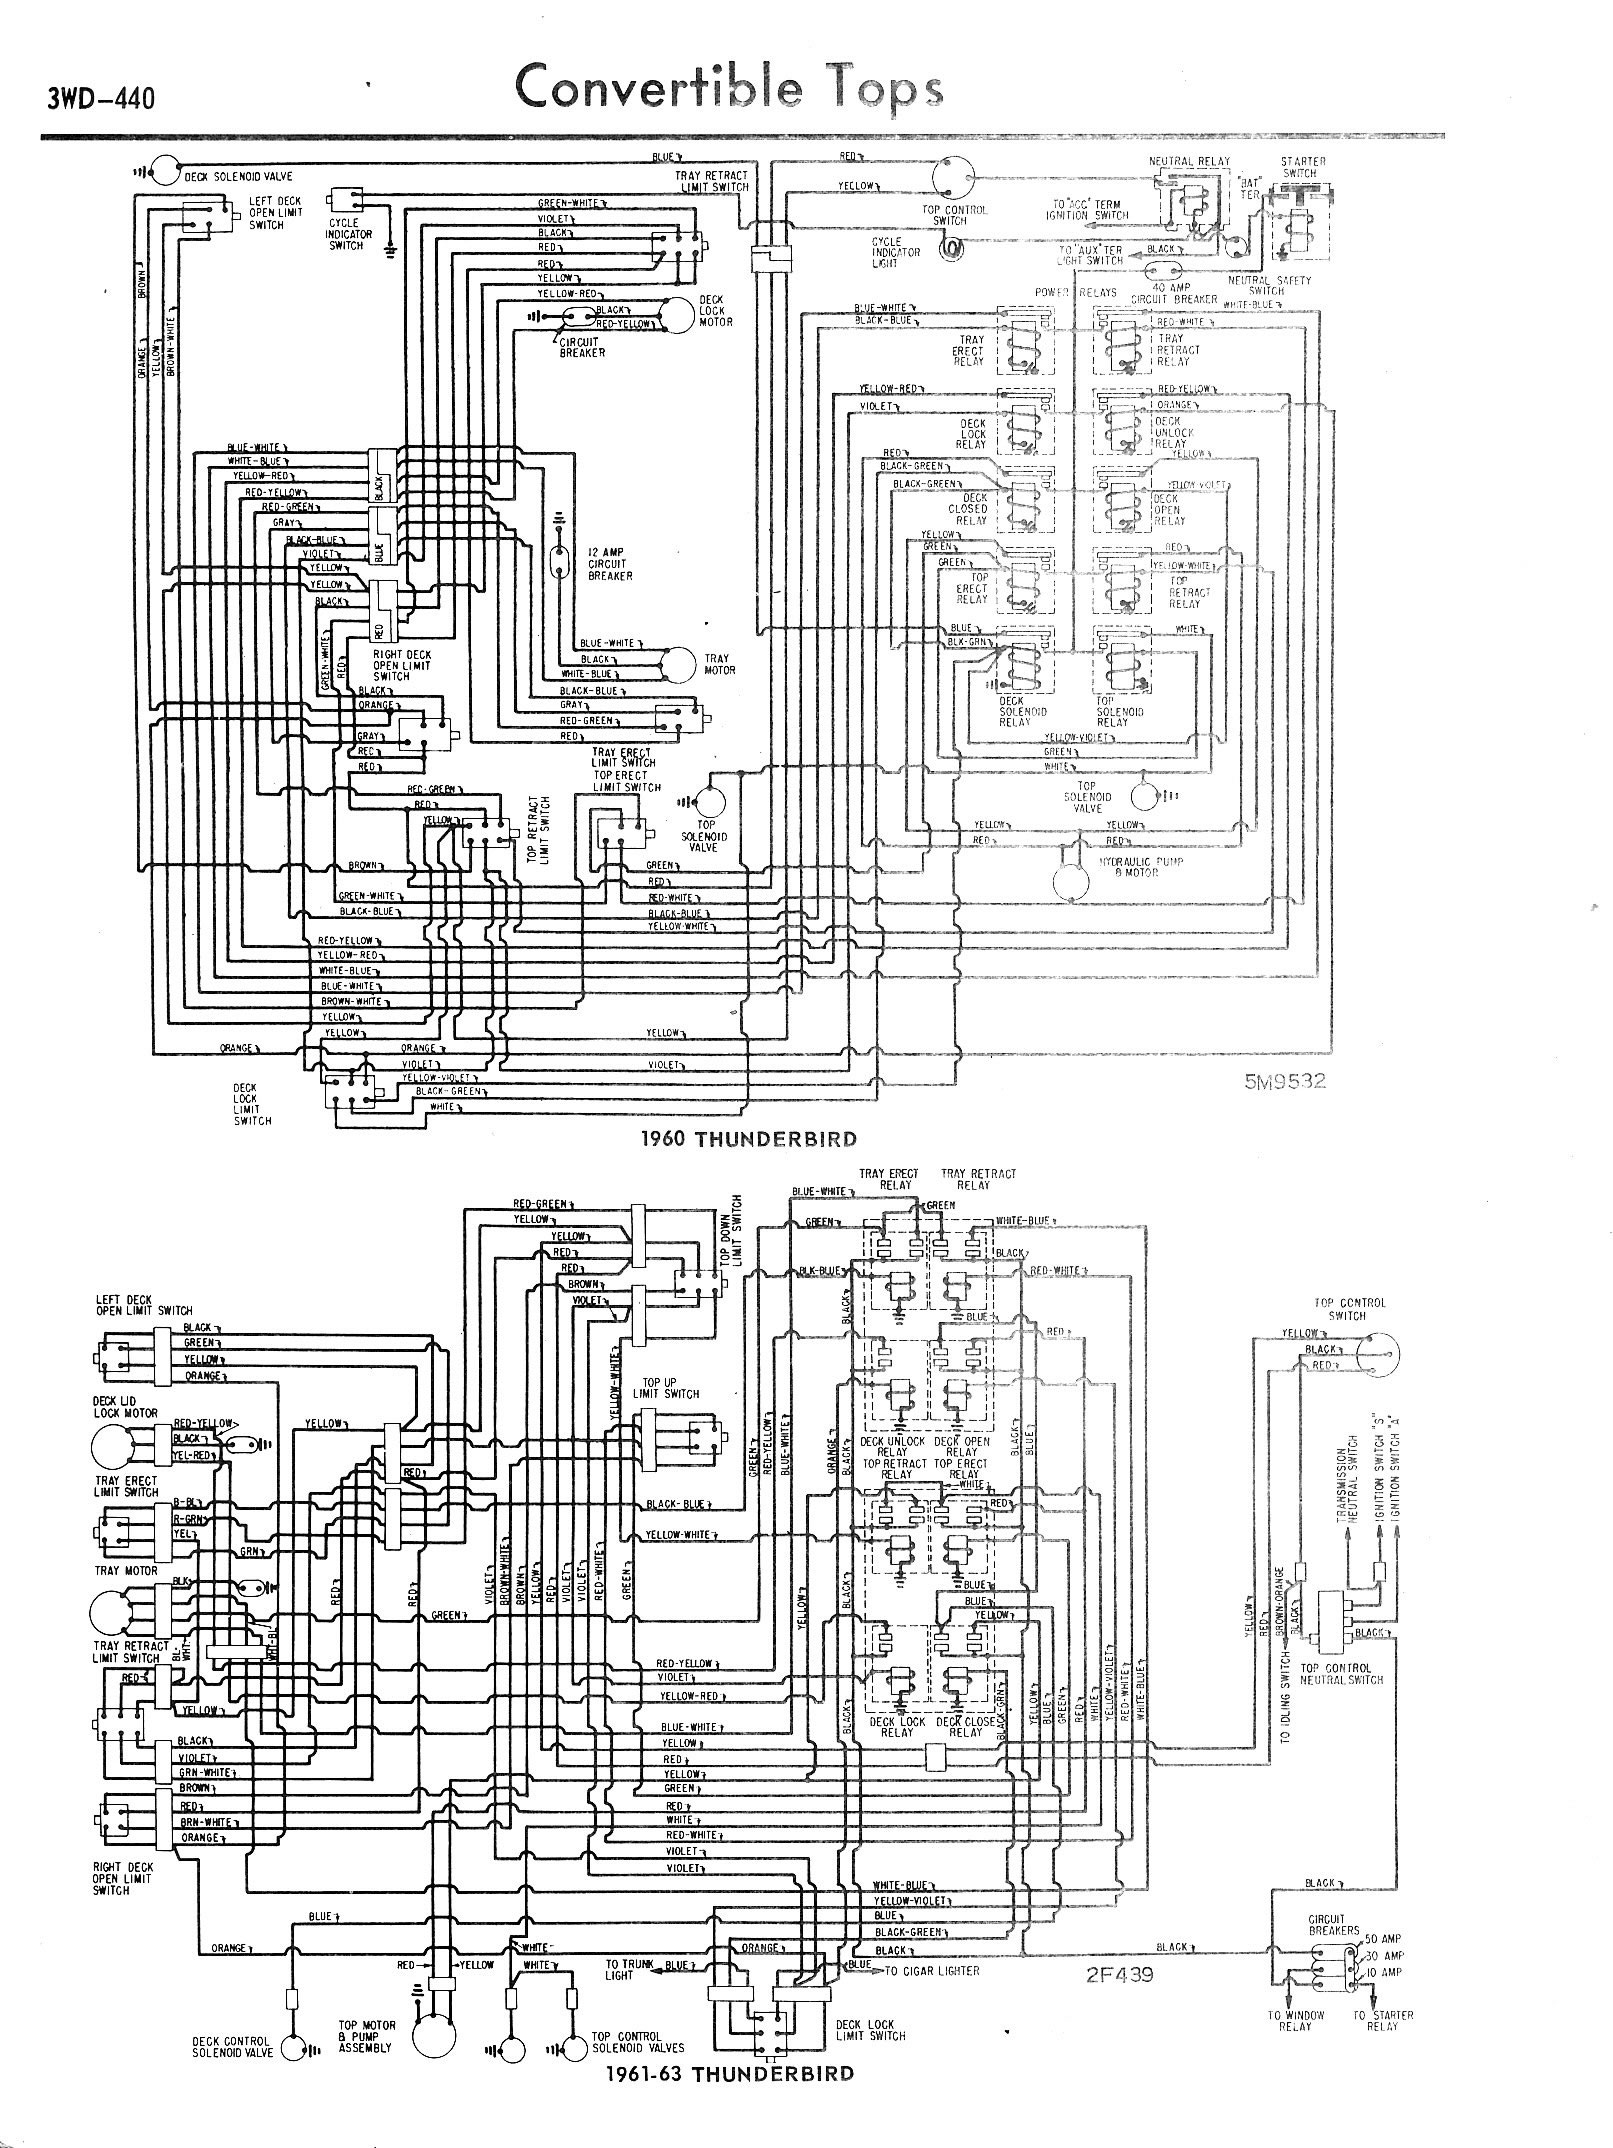 3 wiring diagrams with 3wd 440 on MasseyFerguson08 together with Pachinko in addition Wiring Diagram For Electric Pressure Cooker in addition Widos Hamm also Ether  IP To Modbus TCP IP.